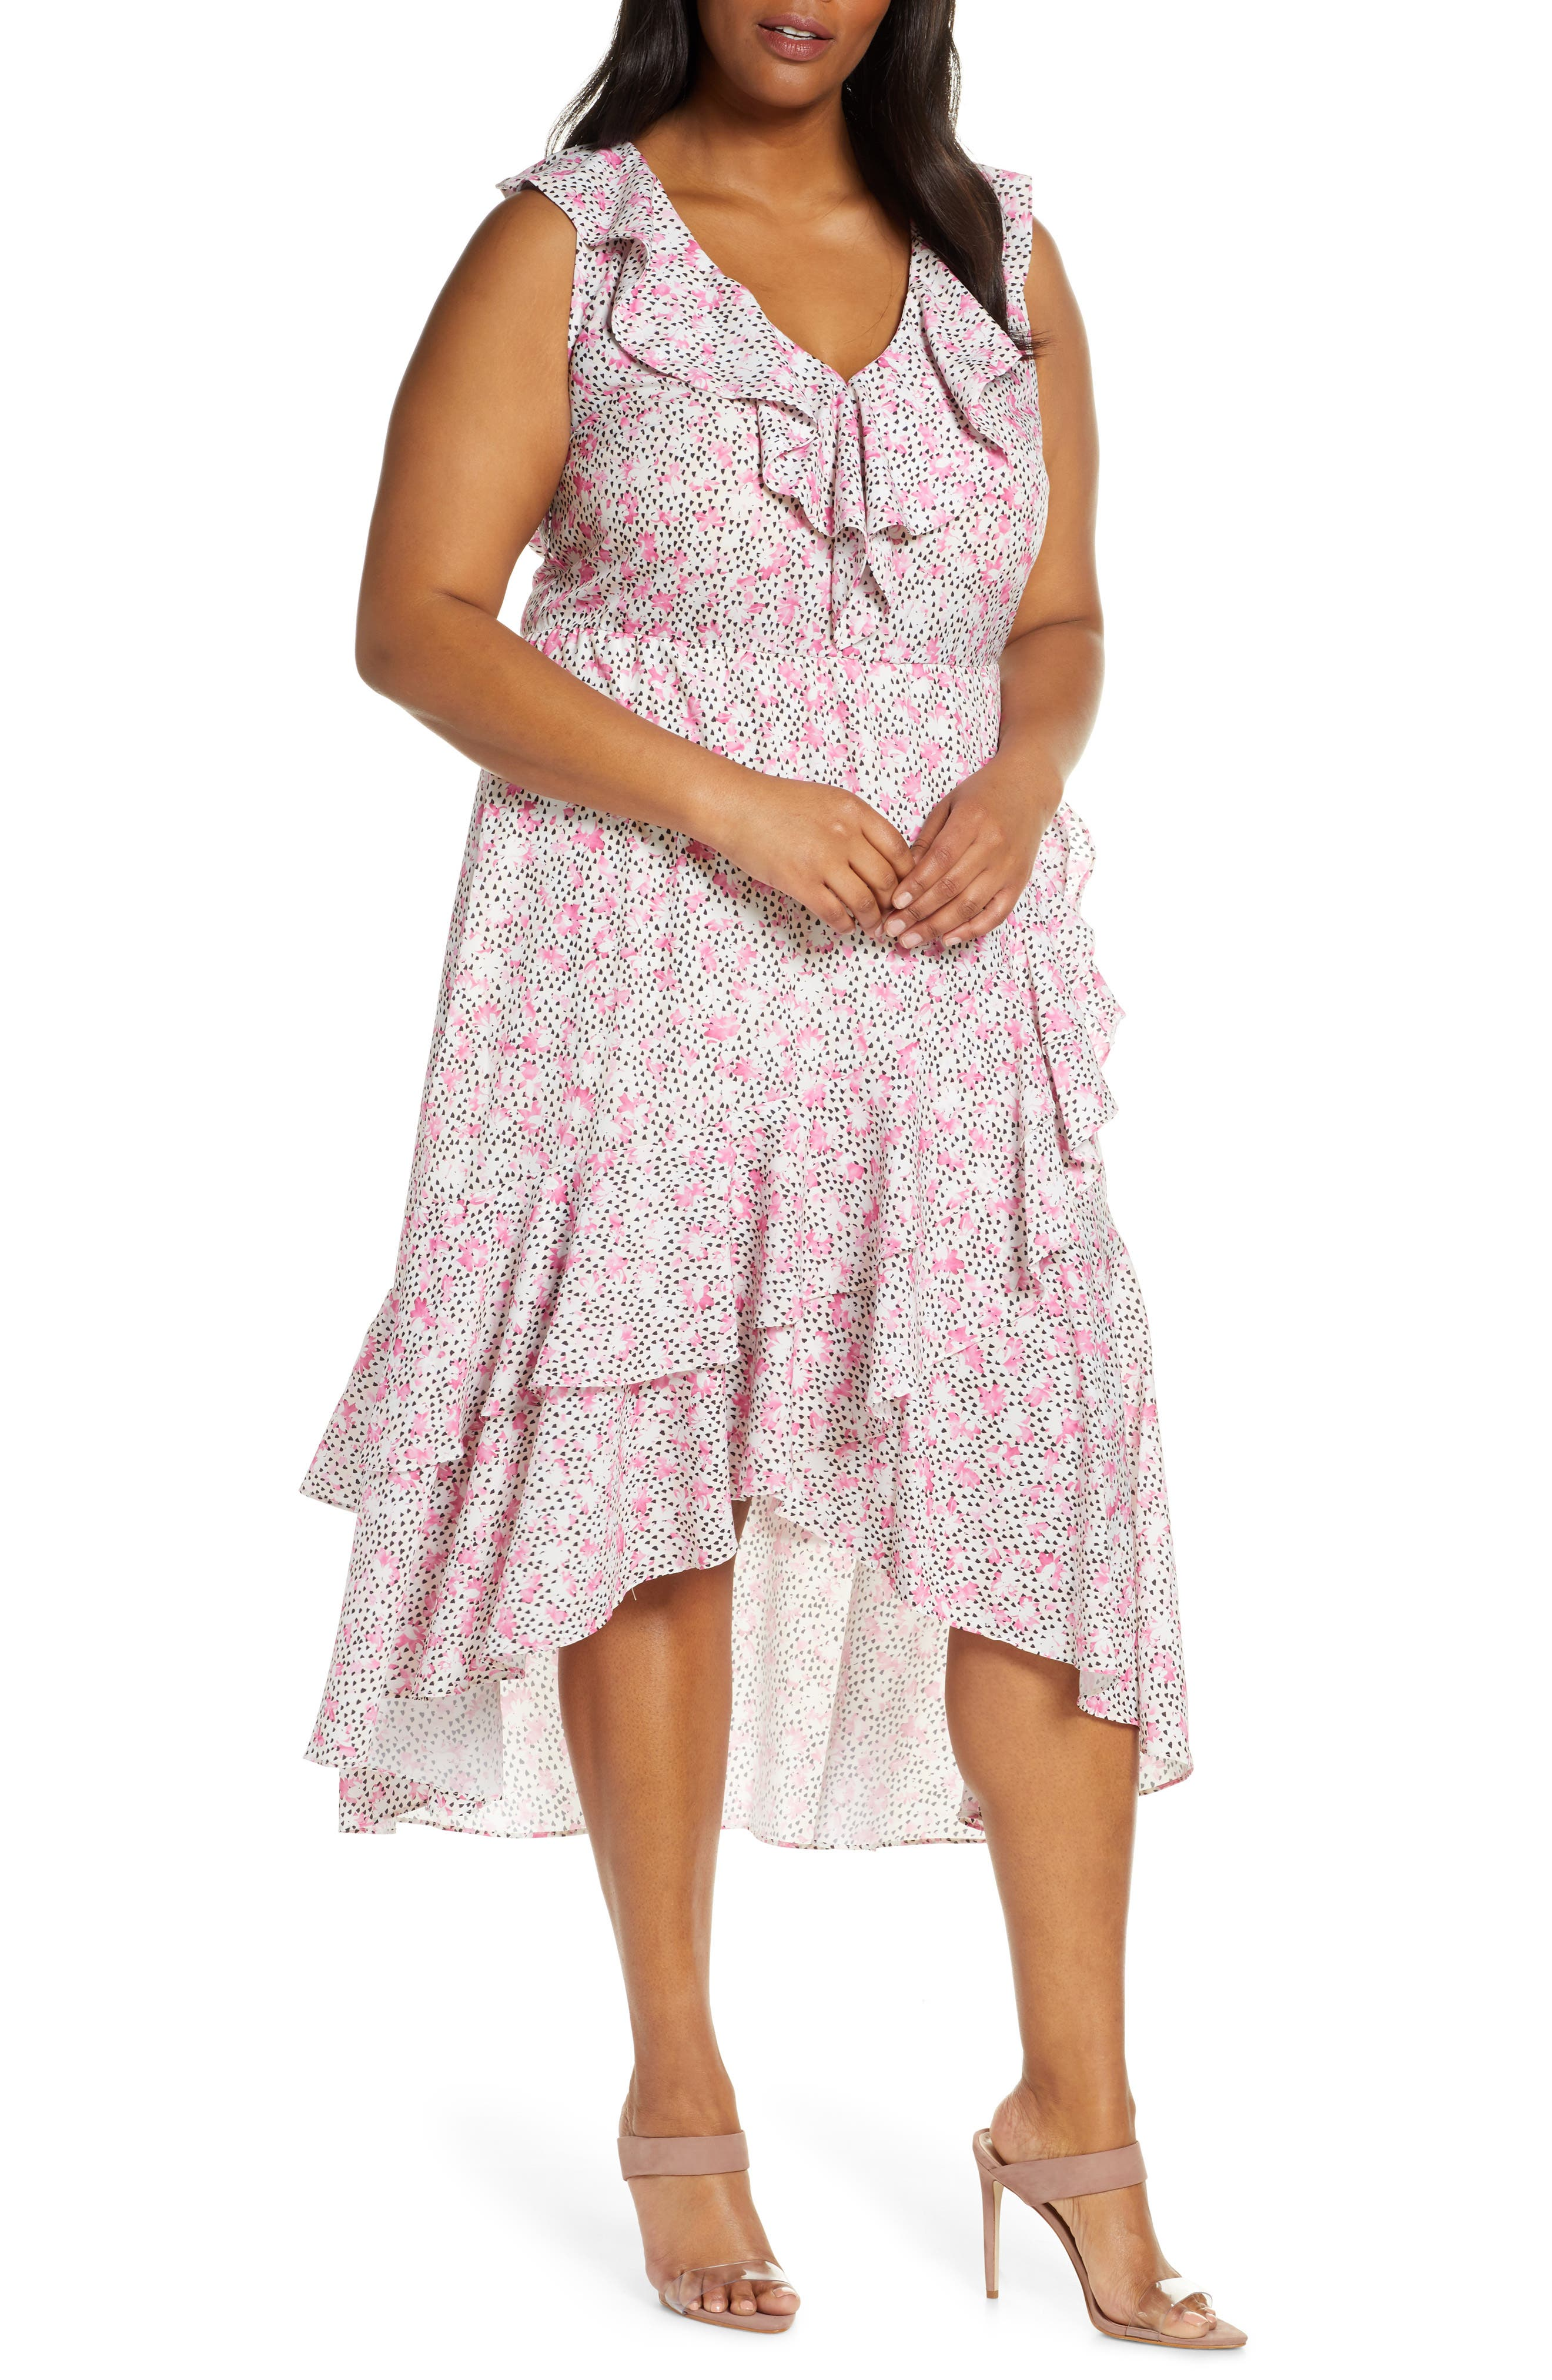 1930s Day Dresses, Afternoon Dresses History Plus Size Womens Eloquii Ruffle Detail High Low Dress $114.95 AT vintagedancer.com